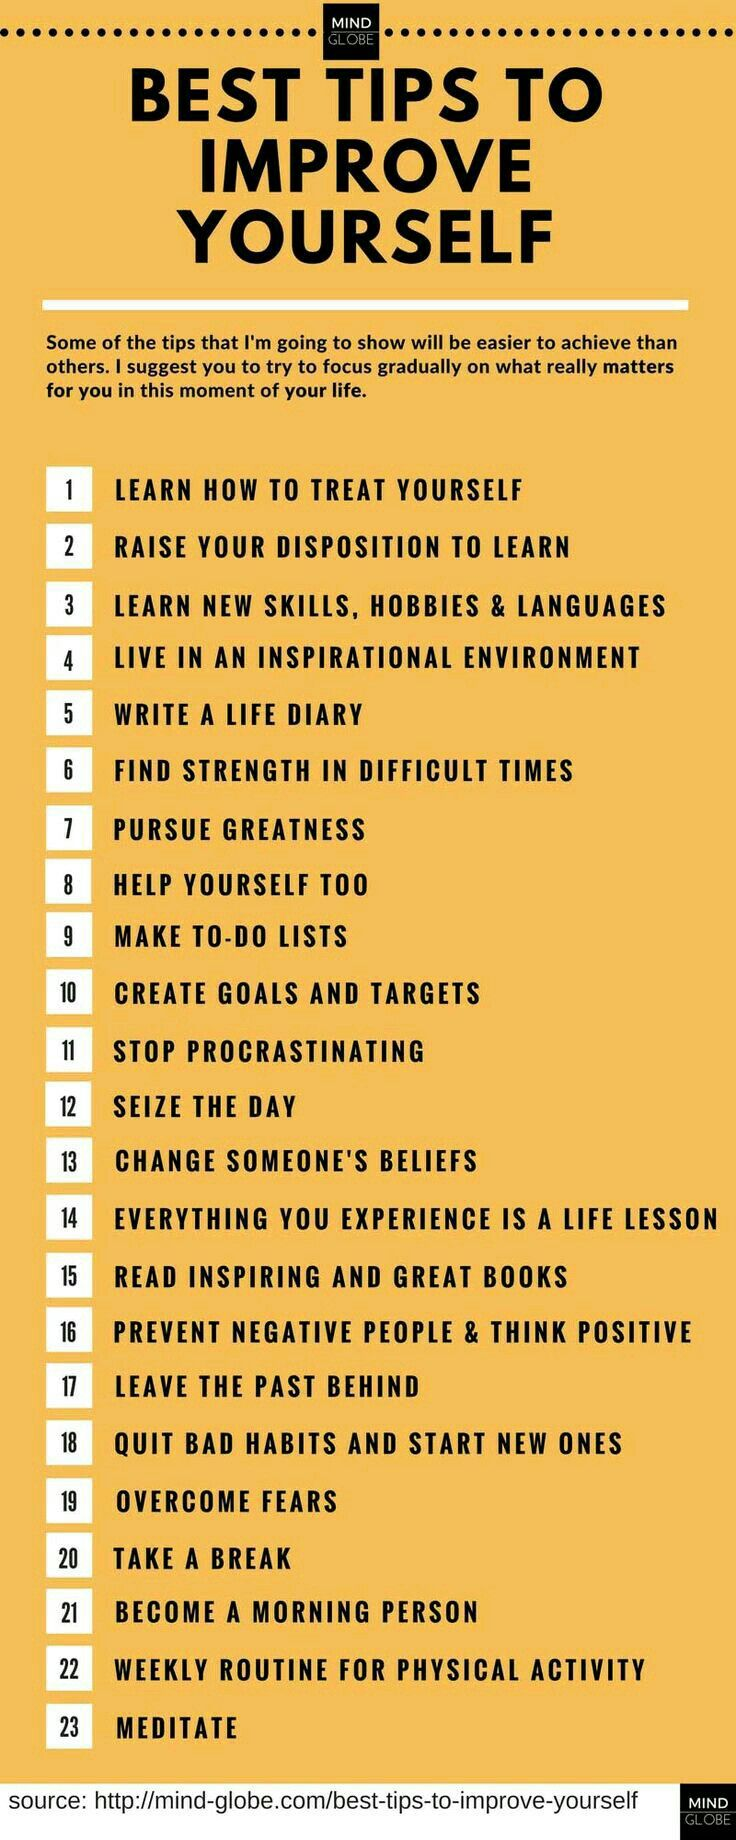 23 Ways To Improve Yourself. #self #life #inspiration